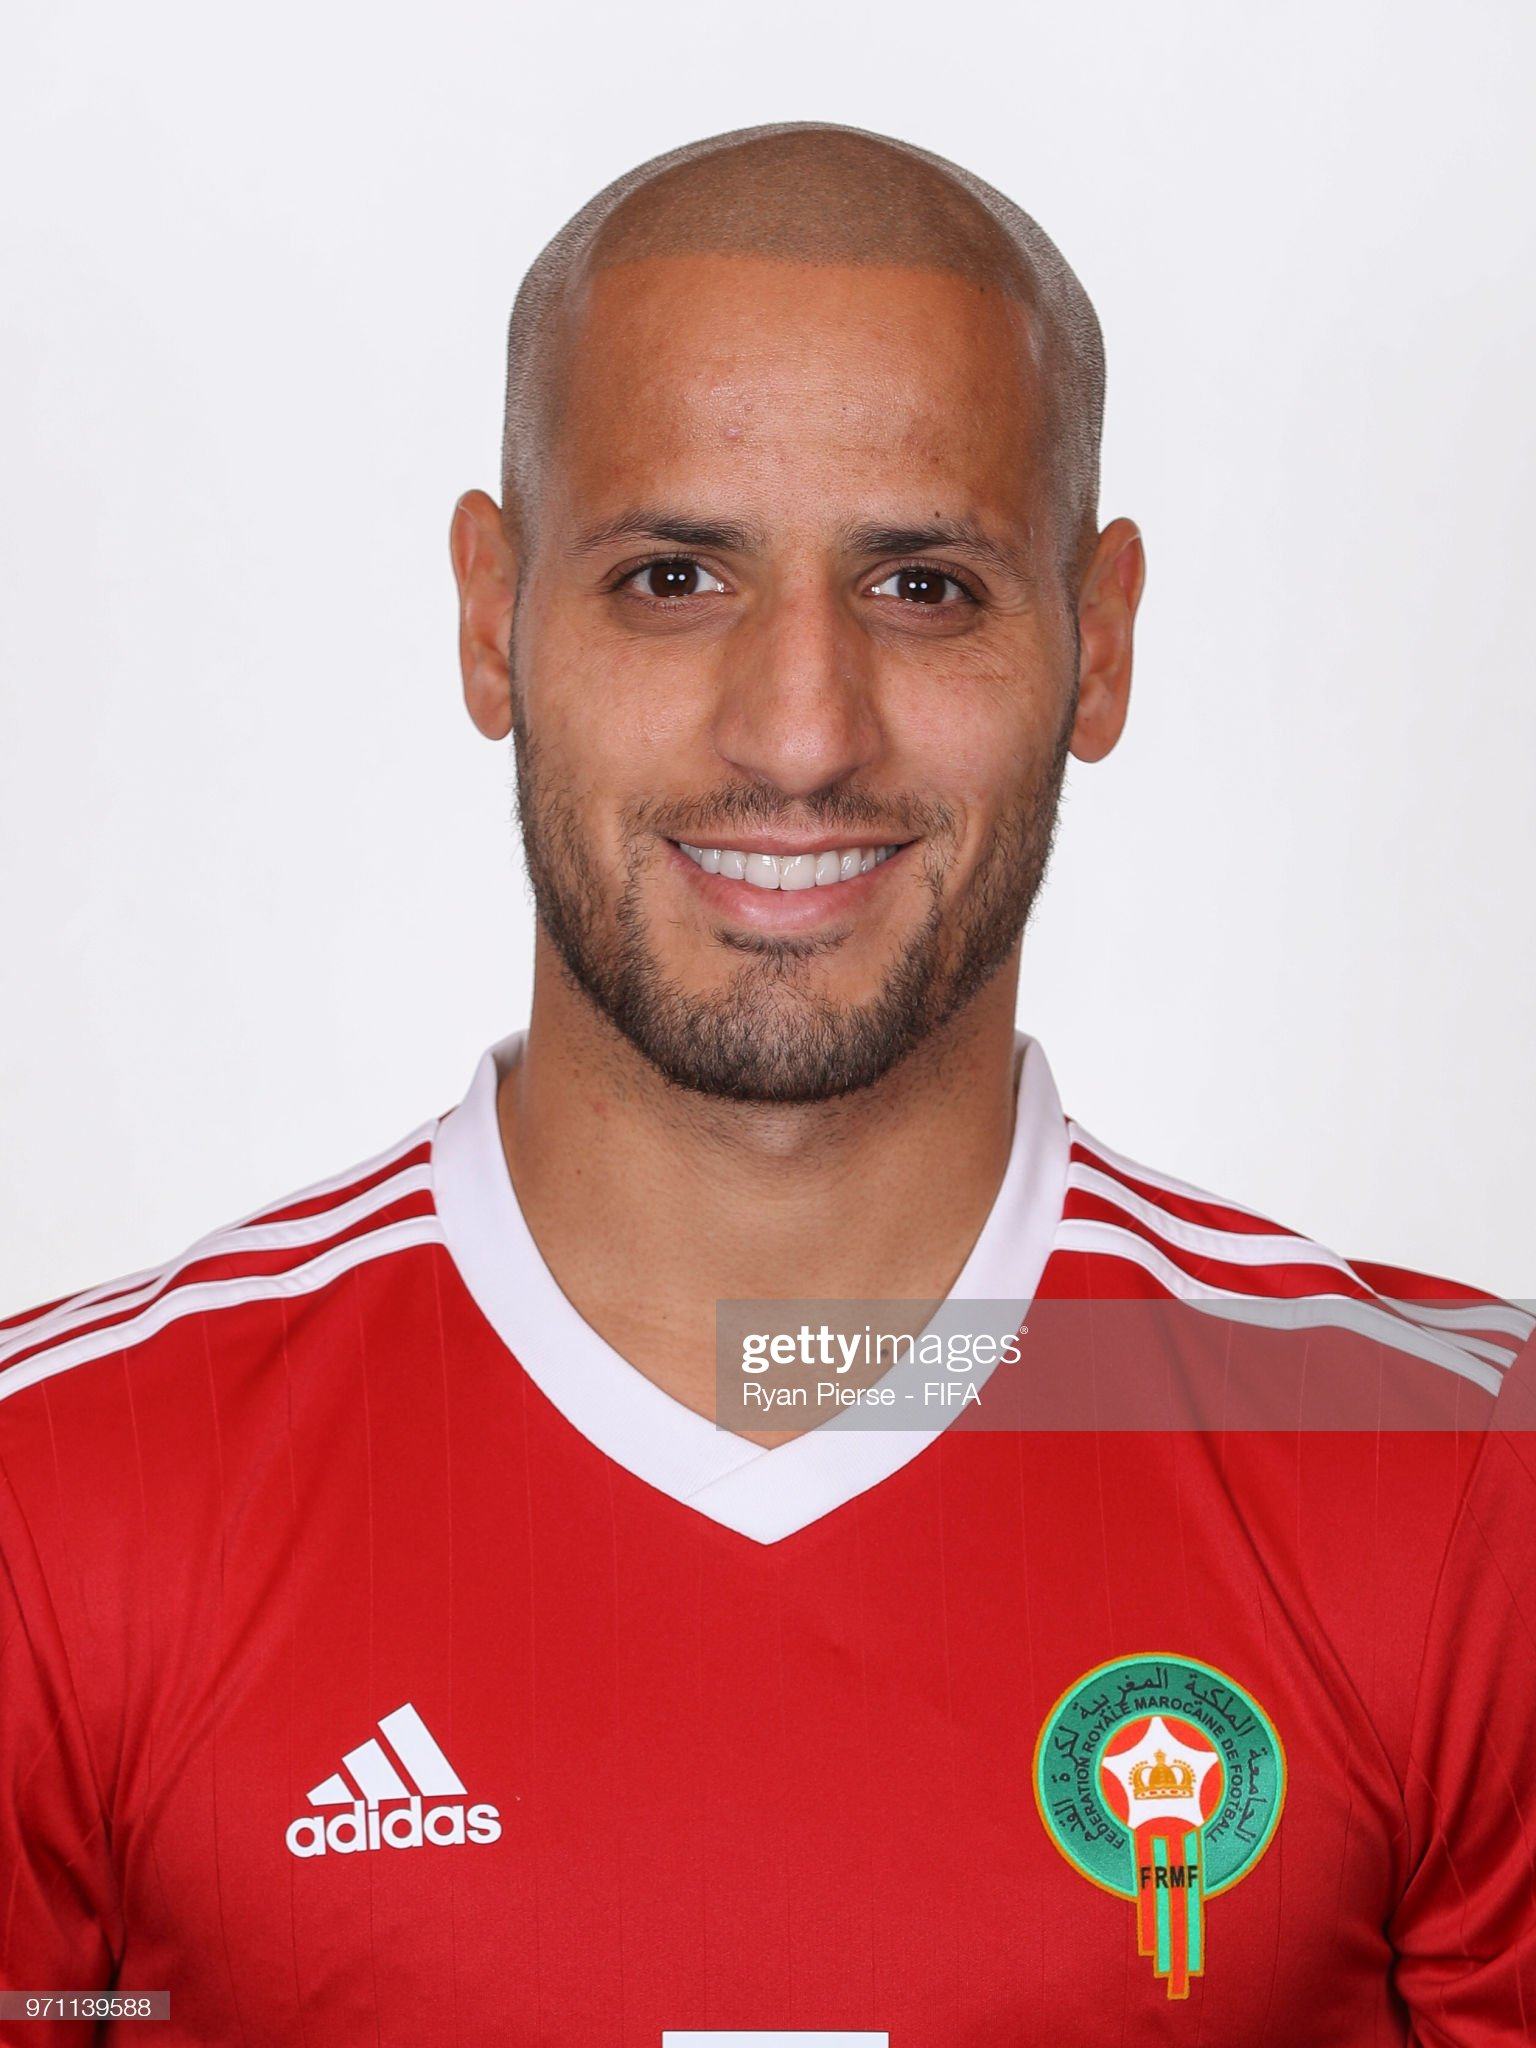 Norteafricanos Karim-el-ahmadi-of-morocco-poses-during-the-official-fifa-world-cup-picture-id971139588?s=2048x2048